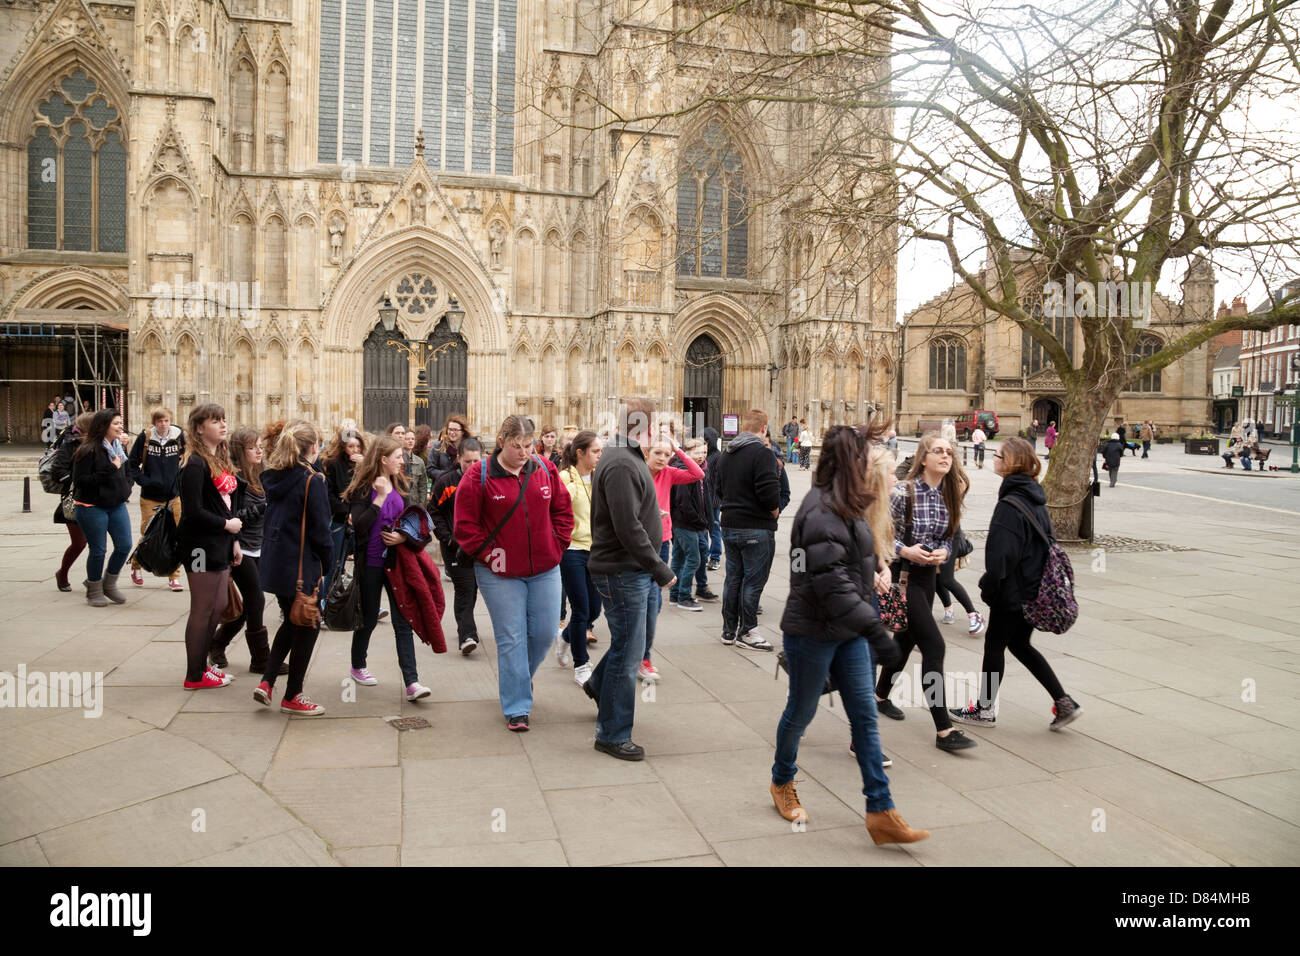 Group of teenagers on a secondary school trip outside York Minster cathedral, Yorkshire, England UK - Stock Image